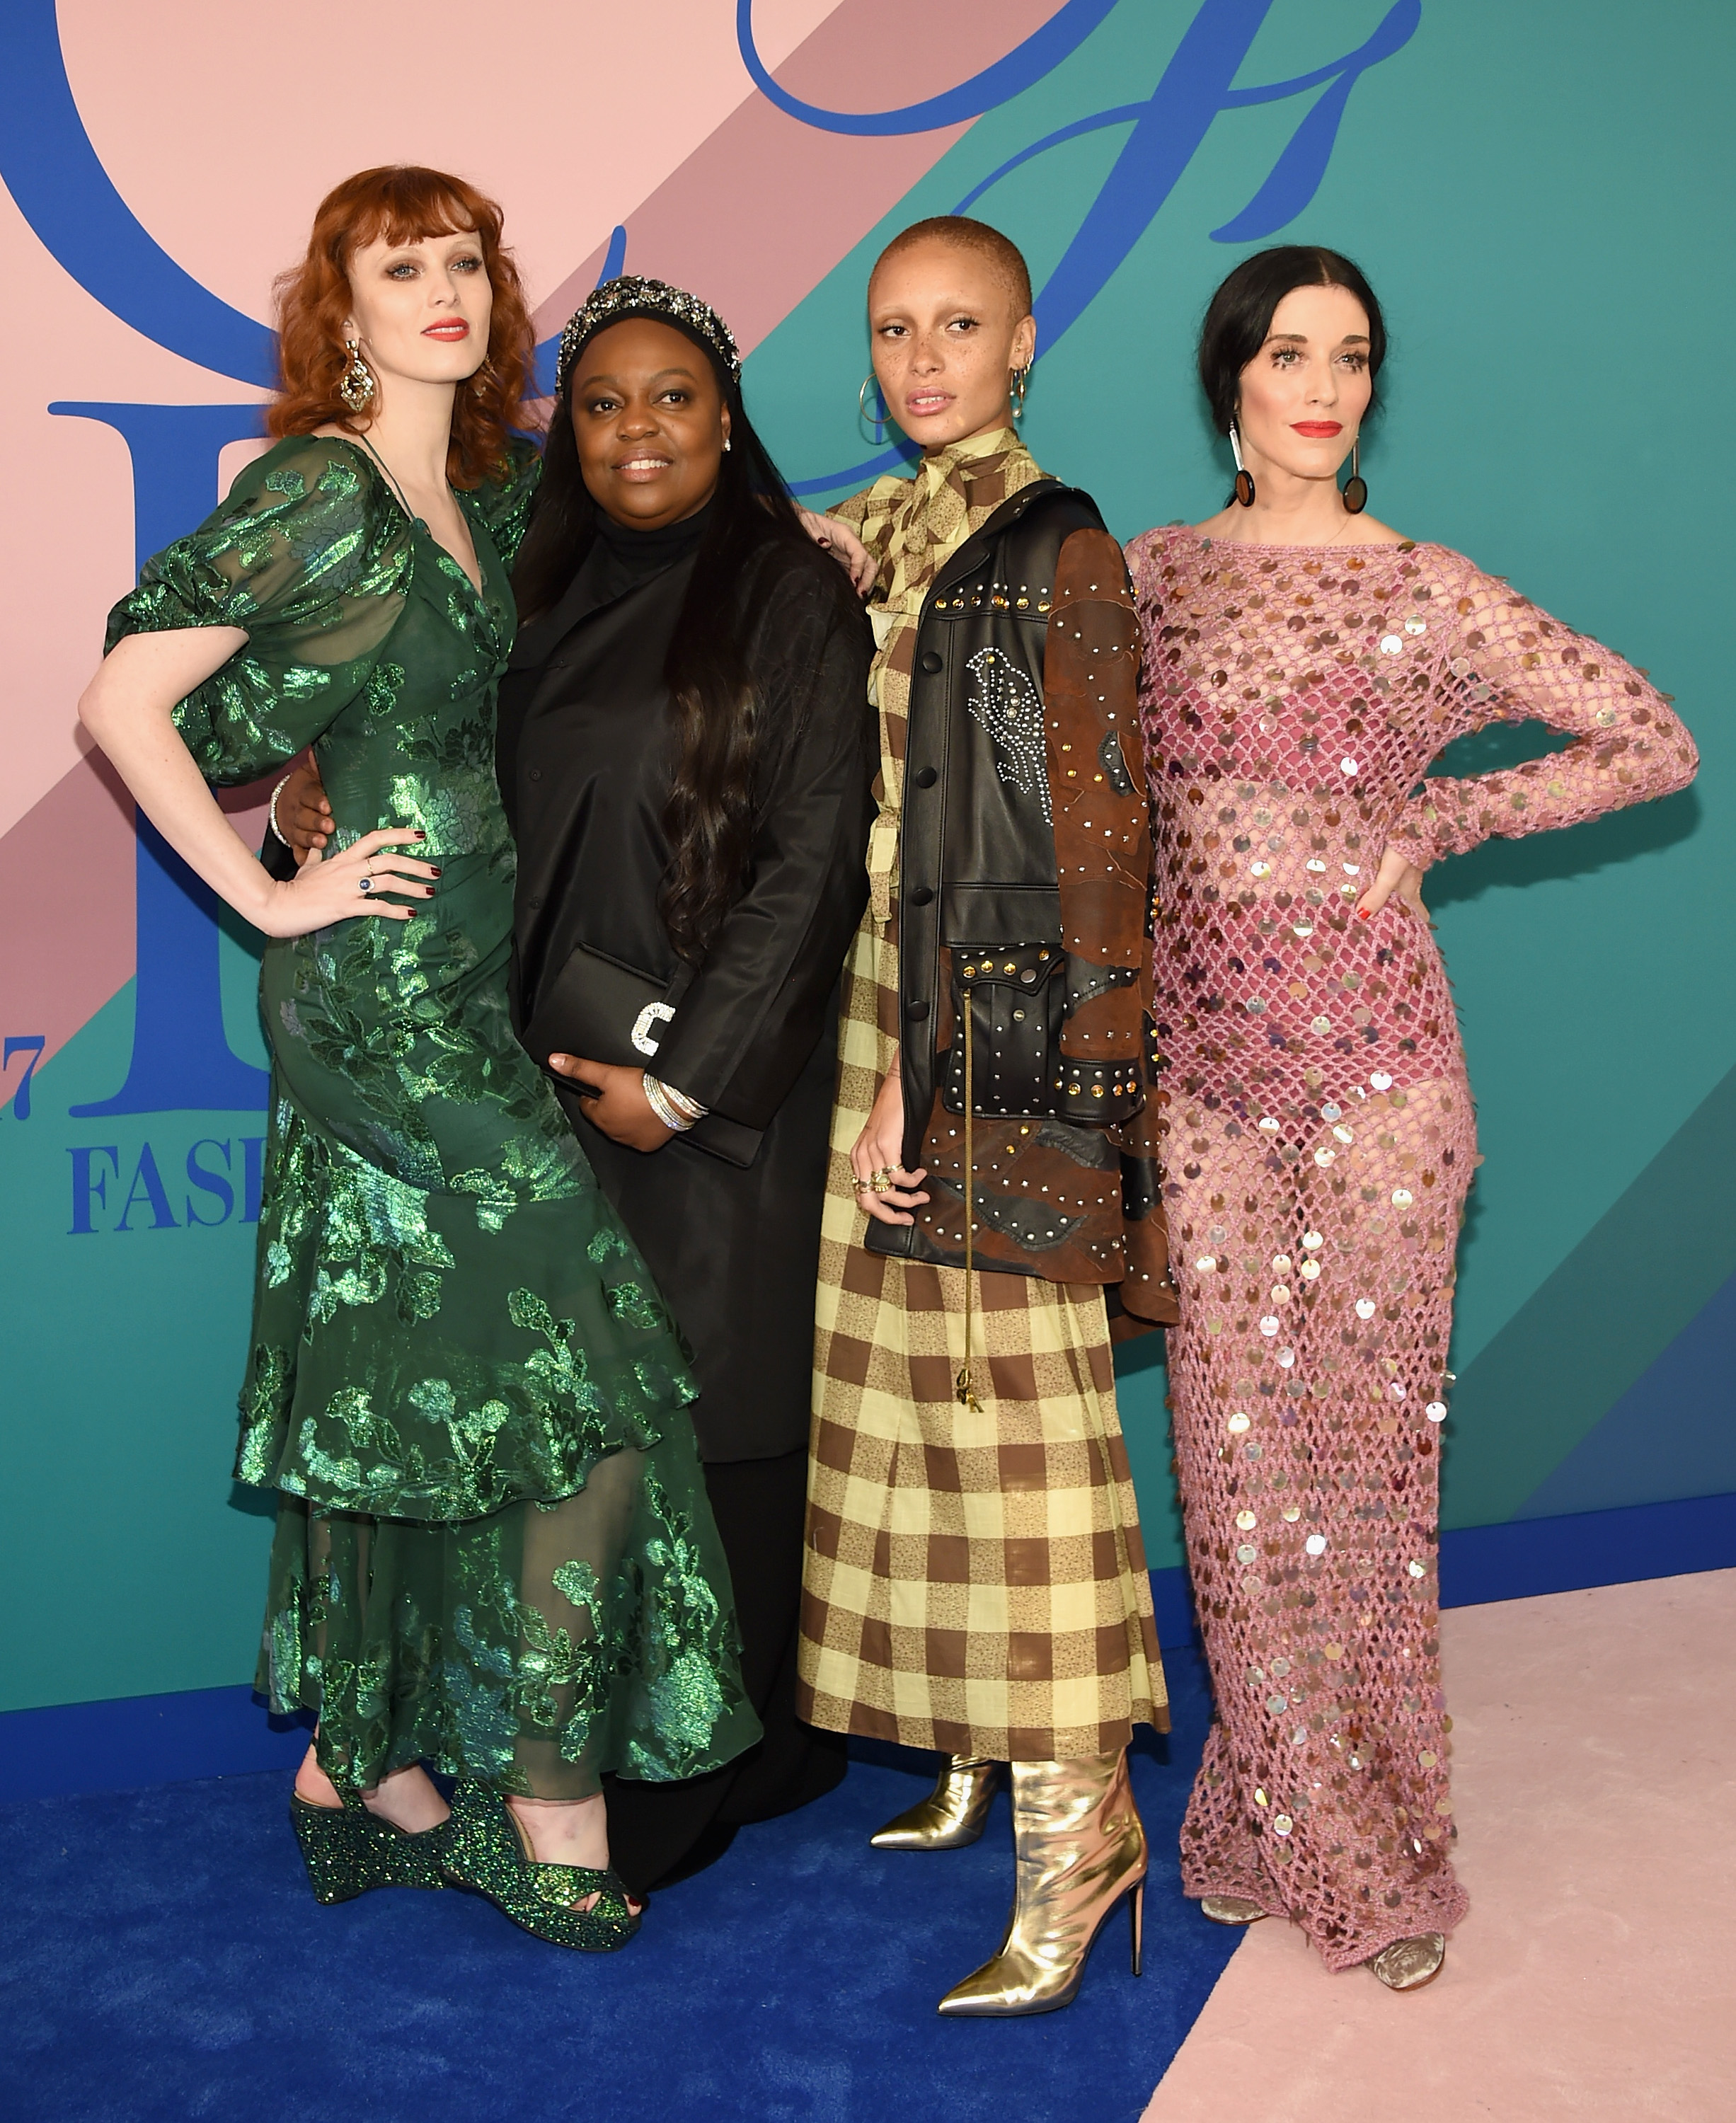 NEW YORK, NY - JUNE 05:  (L-R) Karen Elson, Pat McGrath, Adwoa Aboah and Sarah Sophie Flicker attend the 2017 CFDA Fashion Awards at Hammerstein Ballroom on June 5, 2017 in New York City.  (Photo by Dimitrios Kambouris/Getty Images)